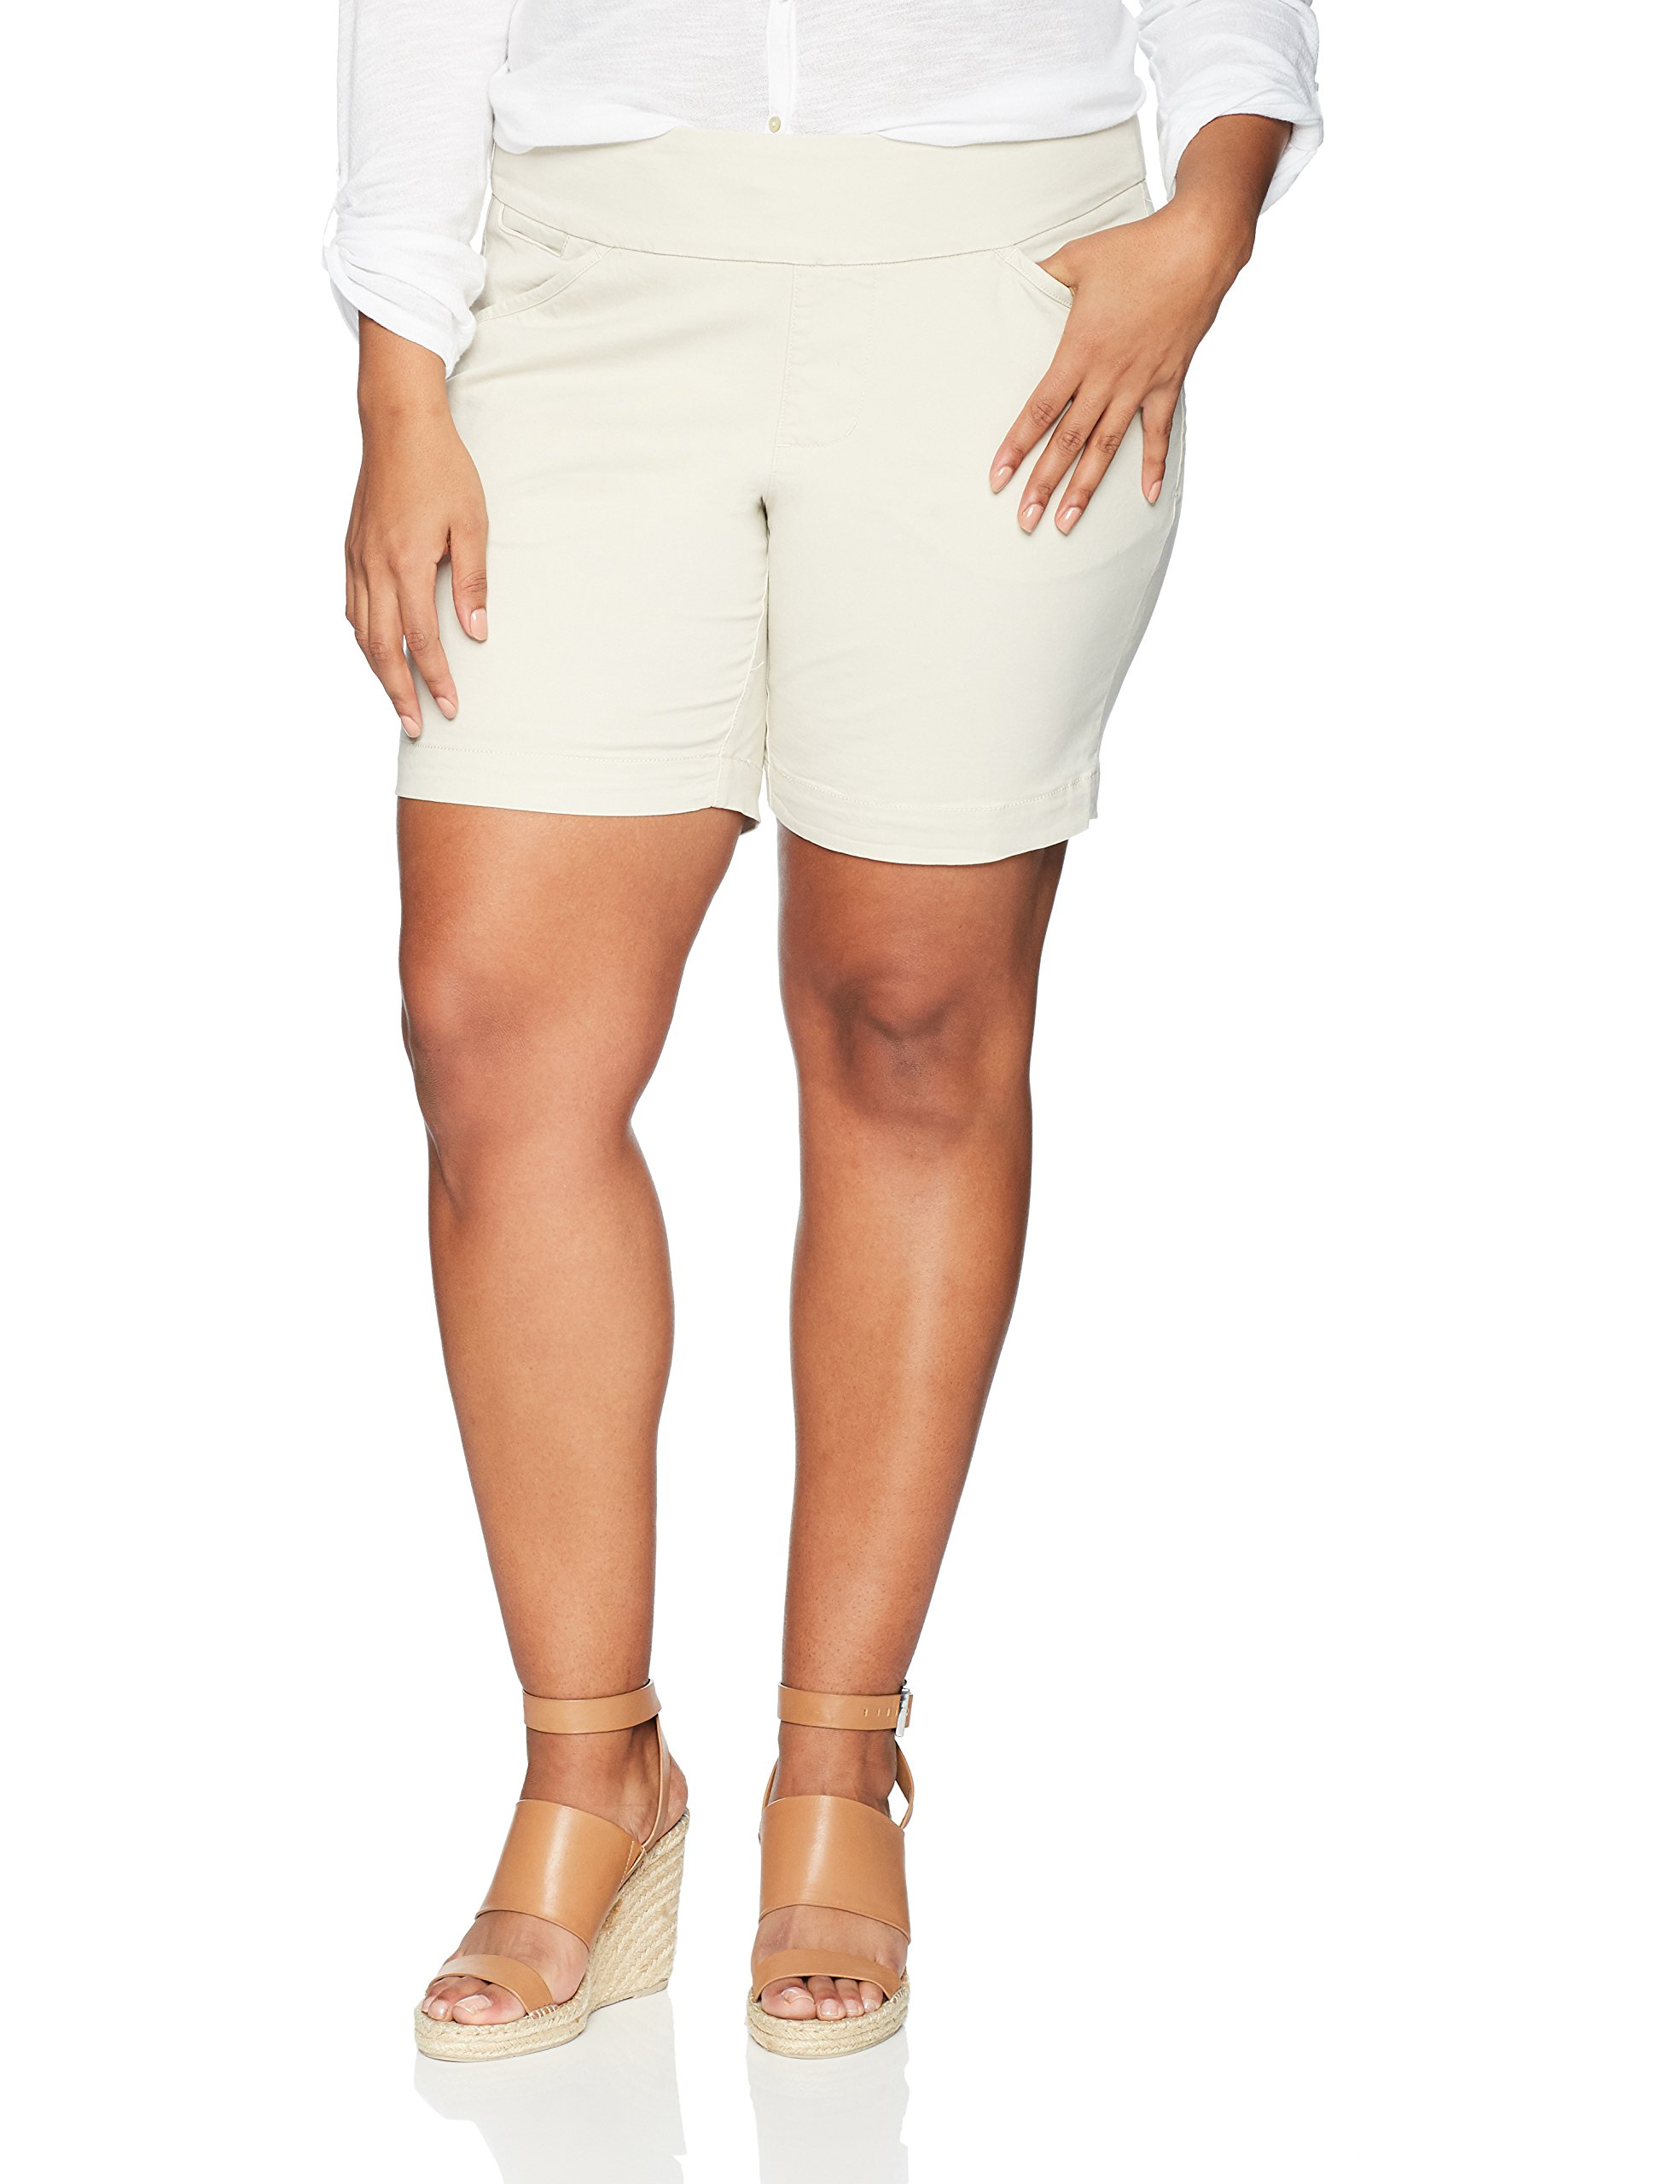 60622e71584 Details about Jag Jeans NEW Beige Women s Size 14W Plus Pull On Bermuda  Shorts  69  755